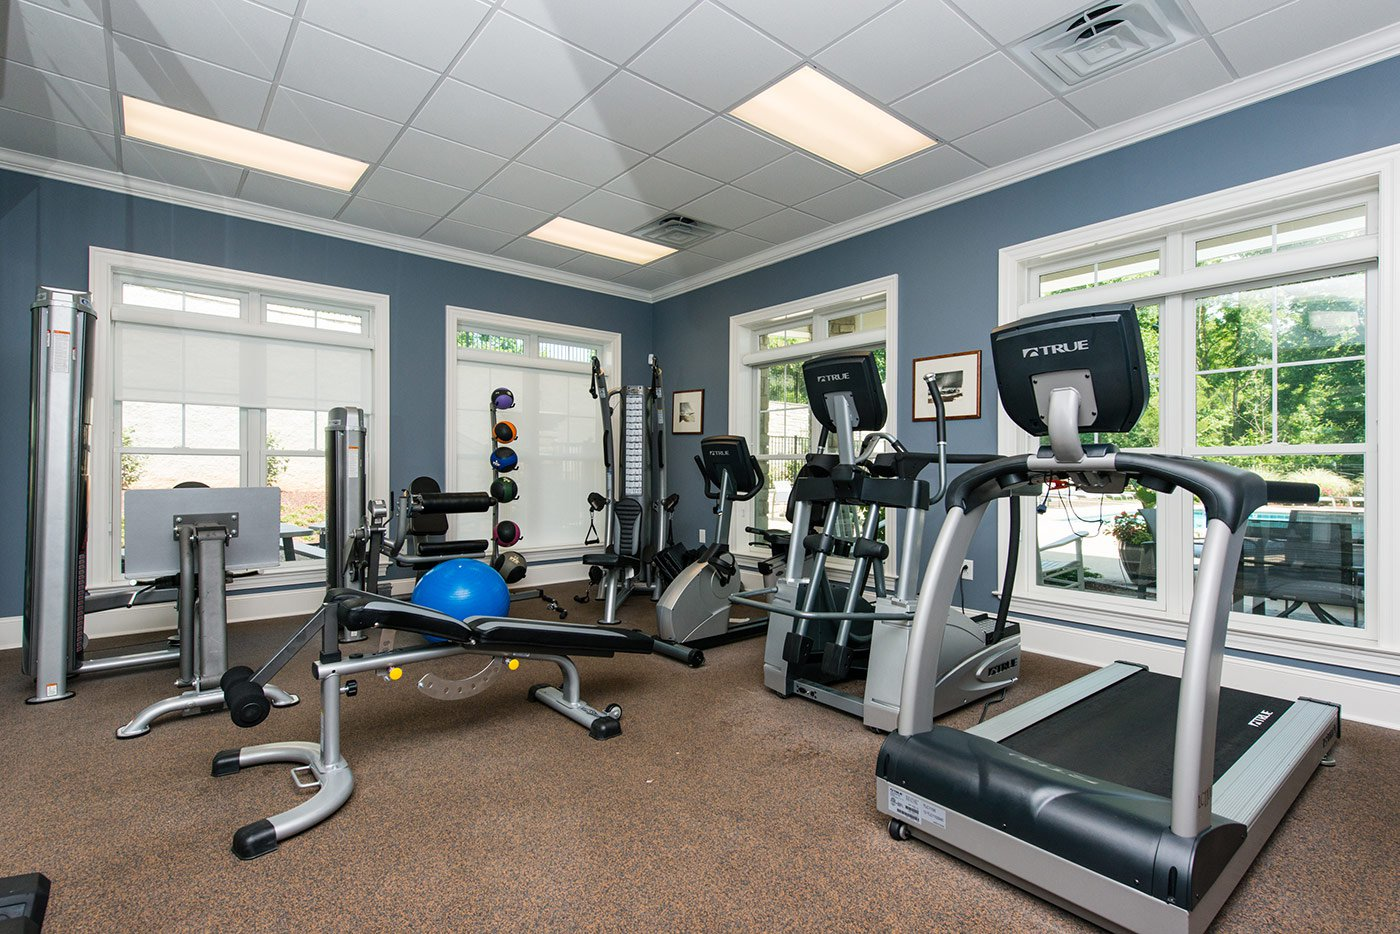 Gym at the Hamptons